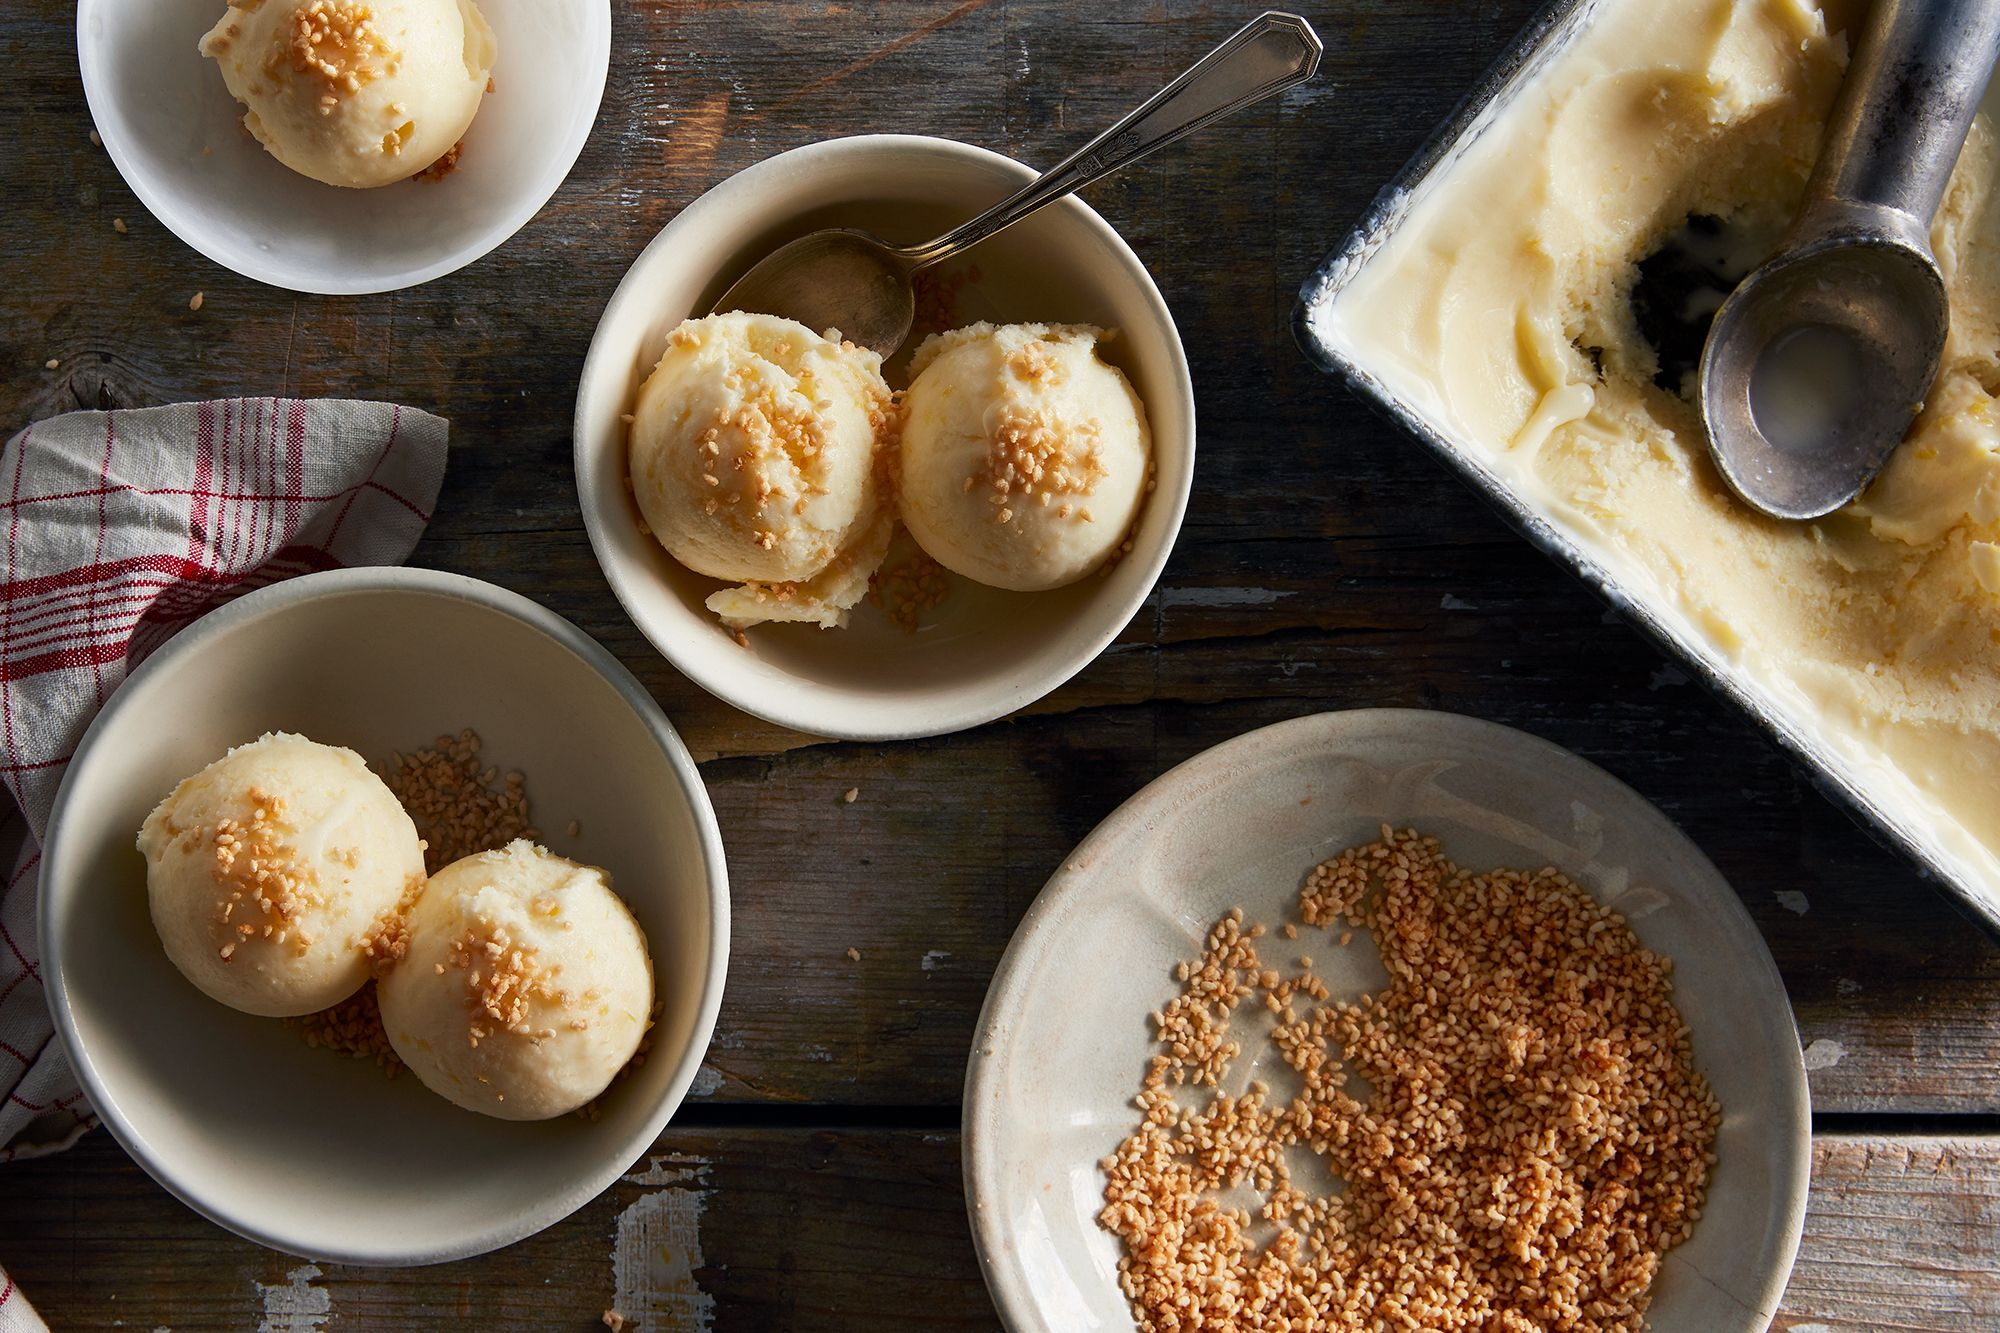 No-Cook, No-Sweat, No-Churn Lemon Ice Cream From a Southern Cooking Legend